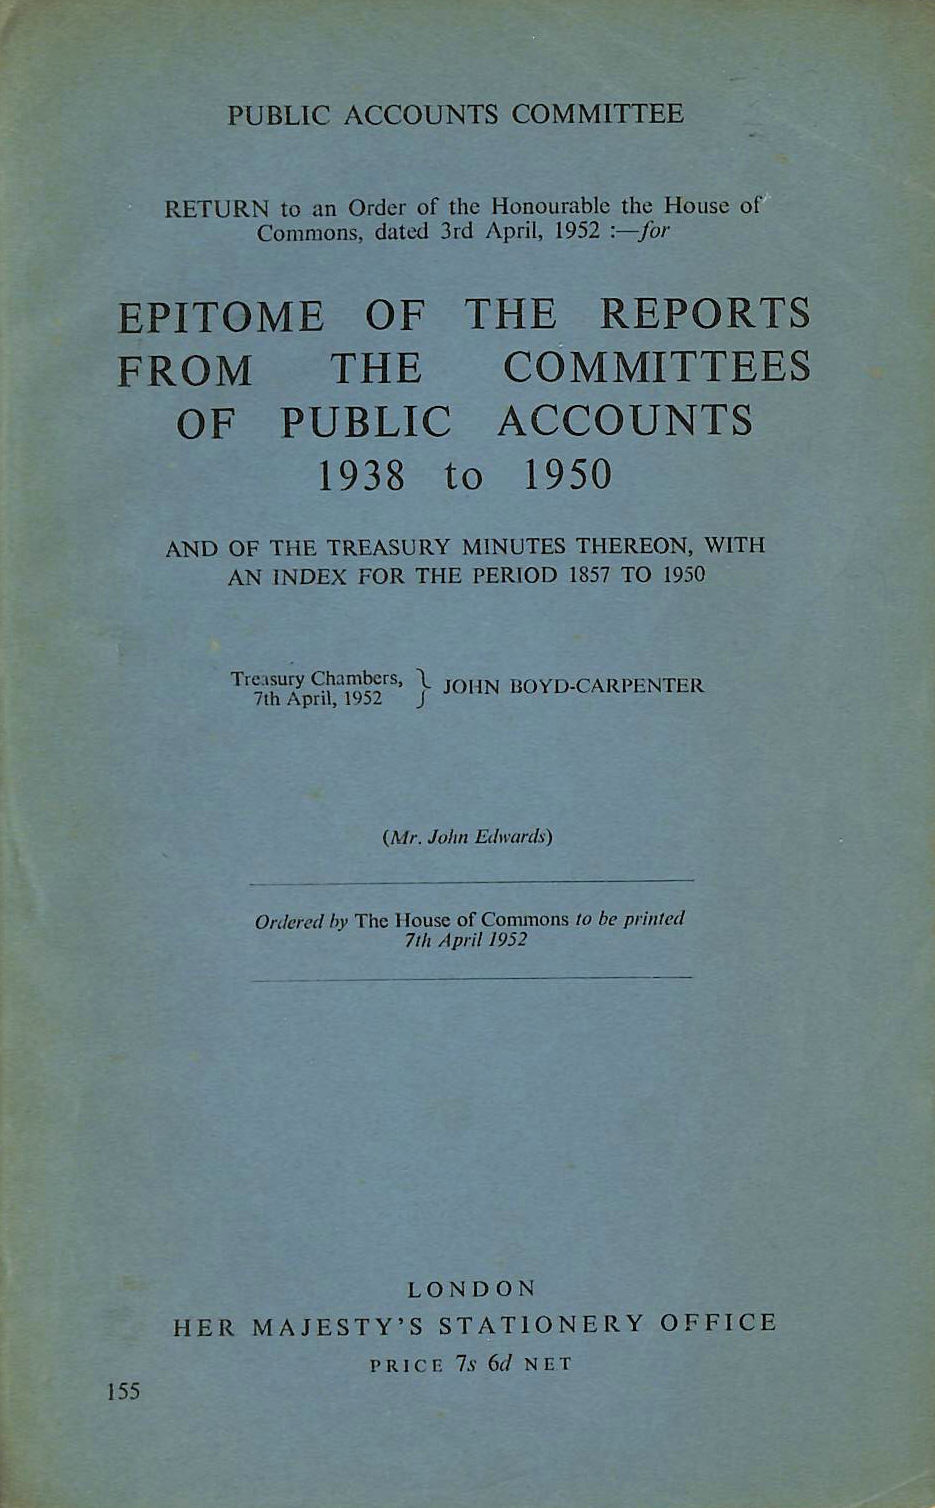 Image for Epitome of the Reports from the Committees of Public Accounts 1938 to 1950